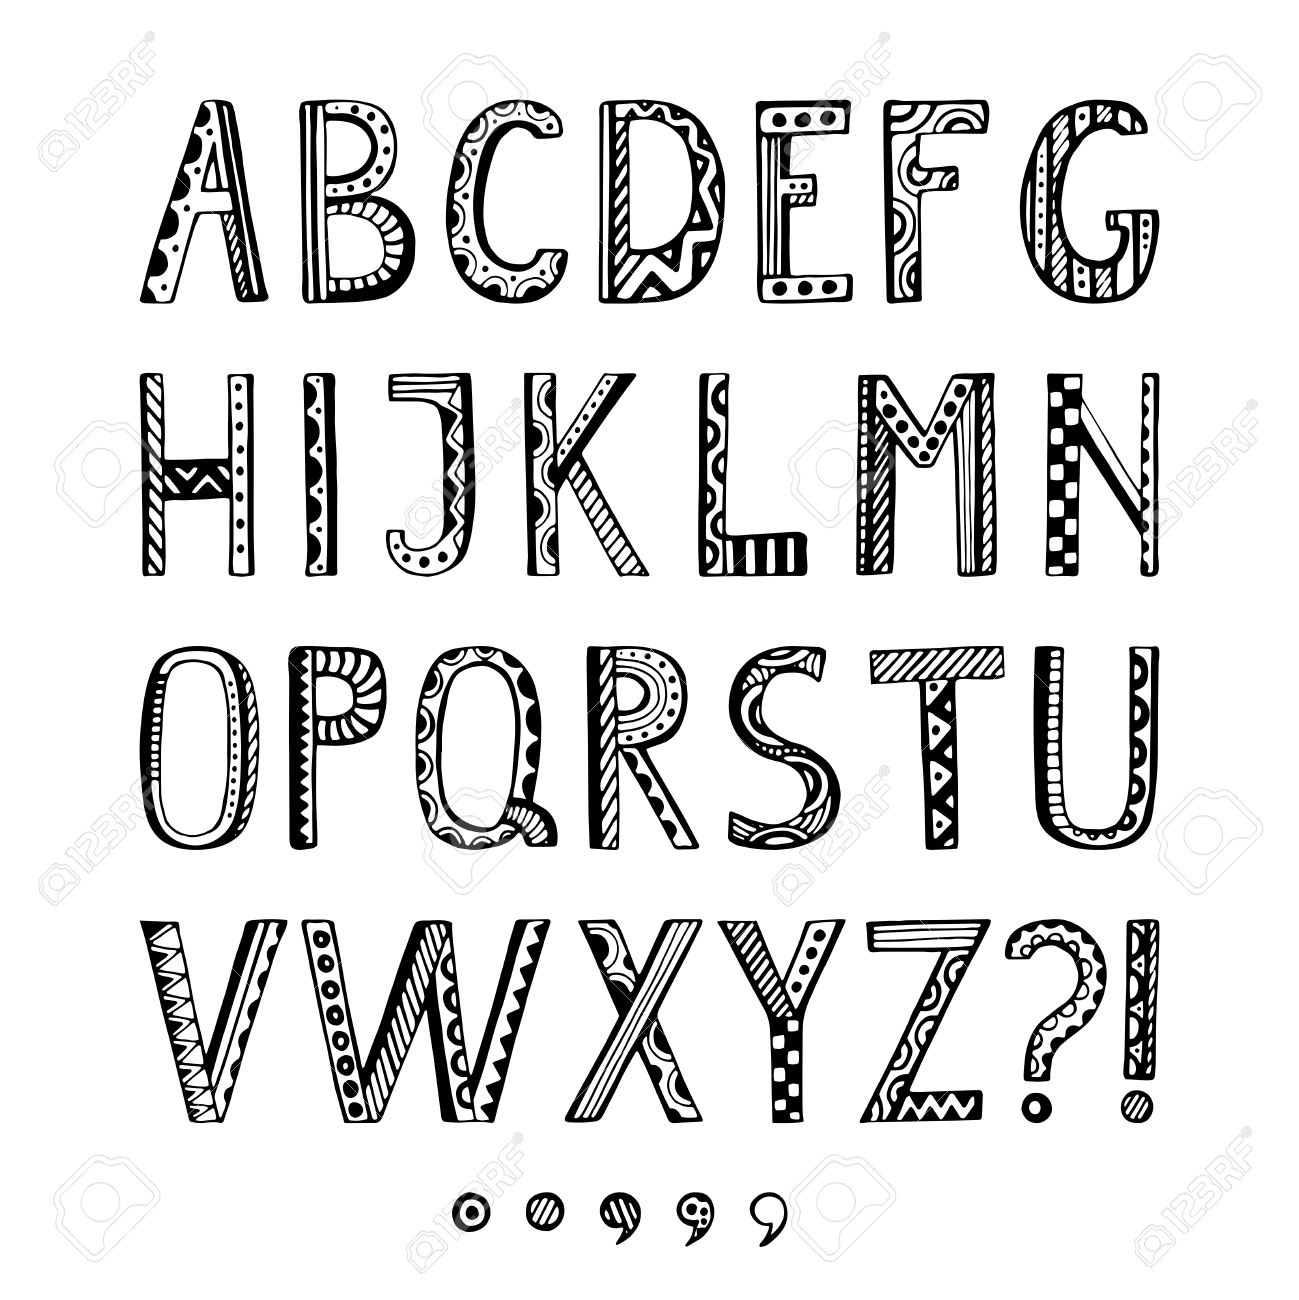 Fantasy Hand Drawn Font In Doodle Style Vector Letters Set Collection Ornamental Alphabet Stock